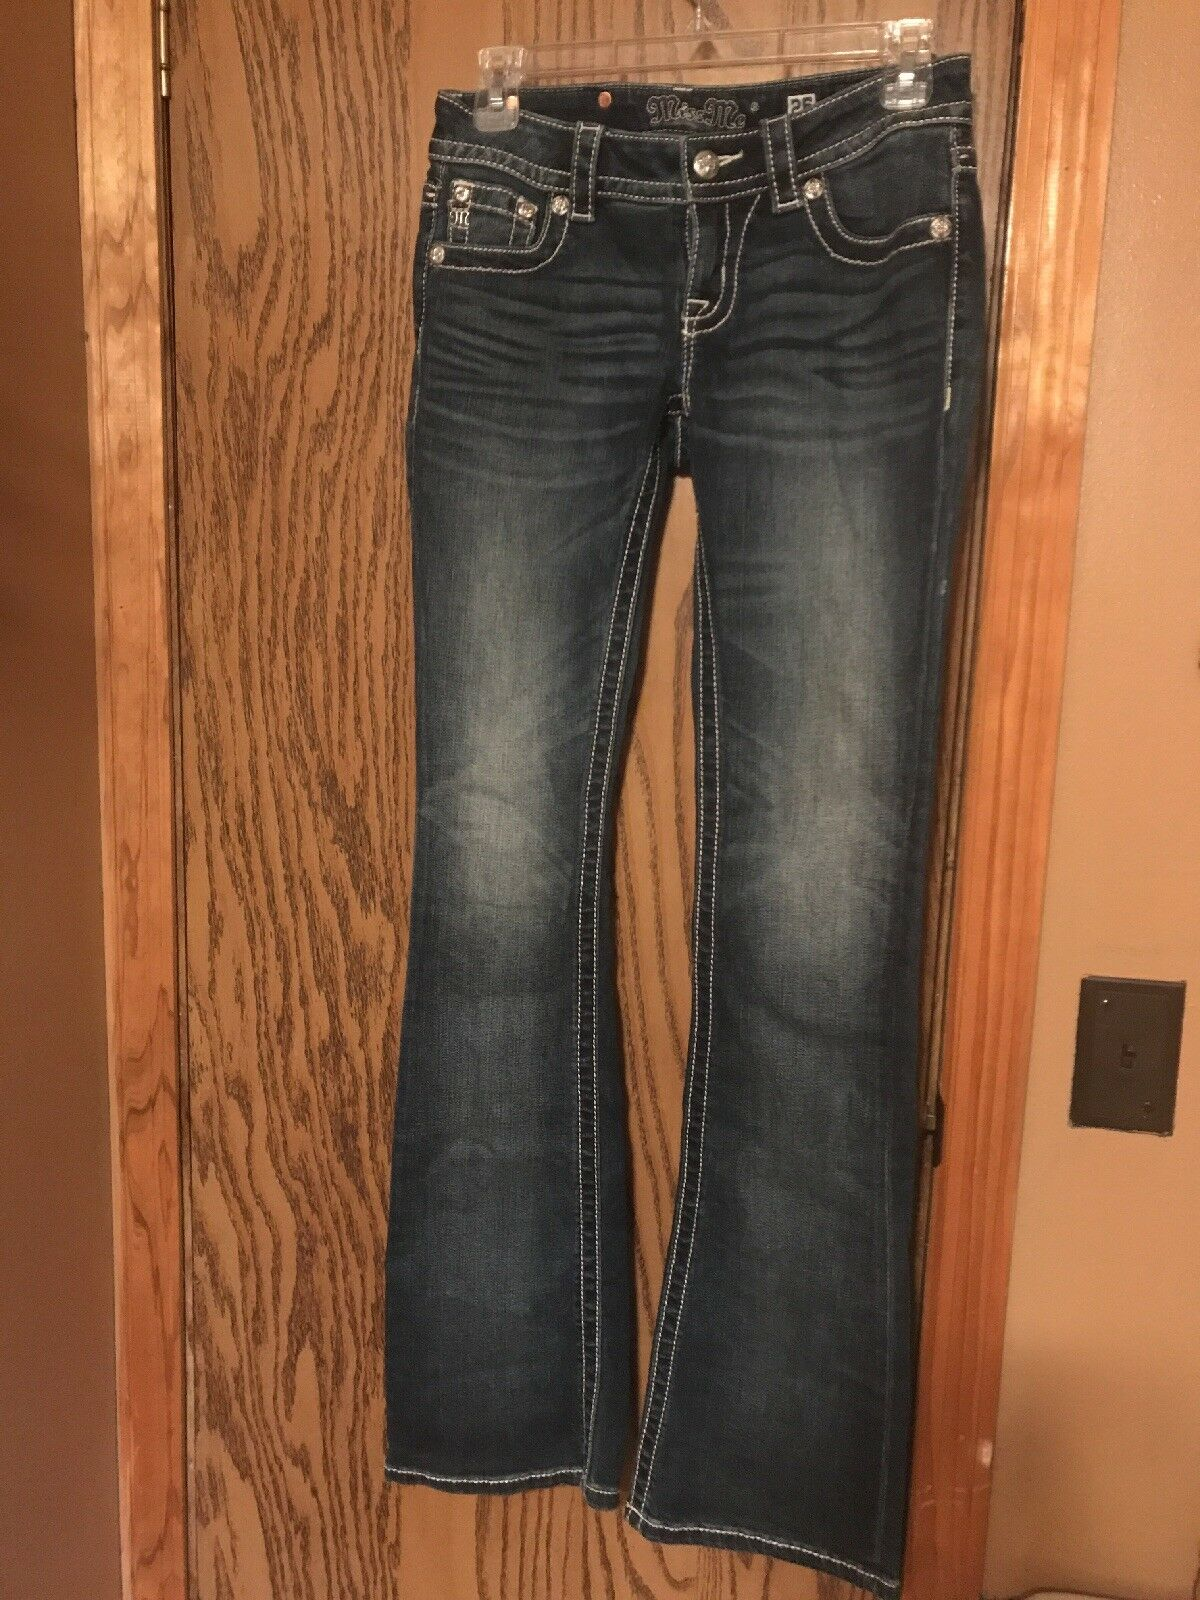 Miss me jeans 25 bootcut new